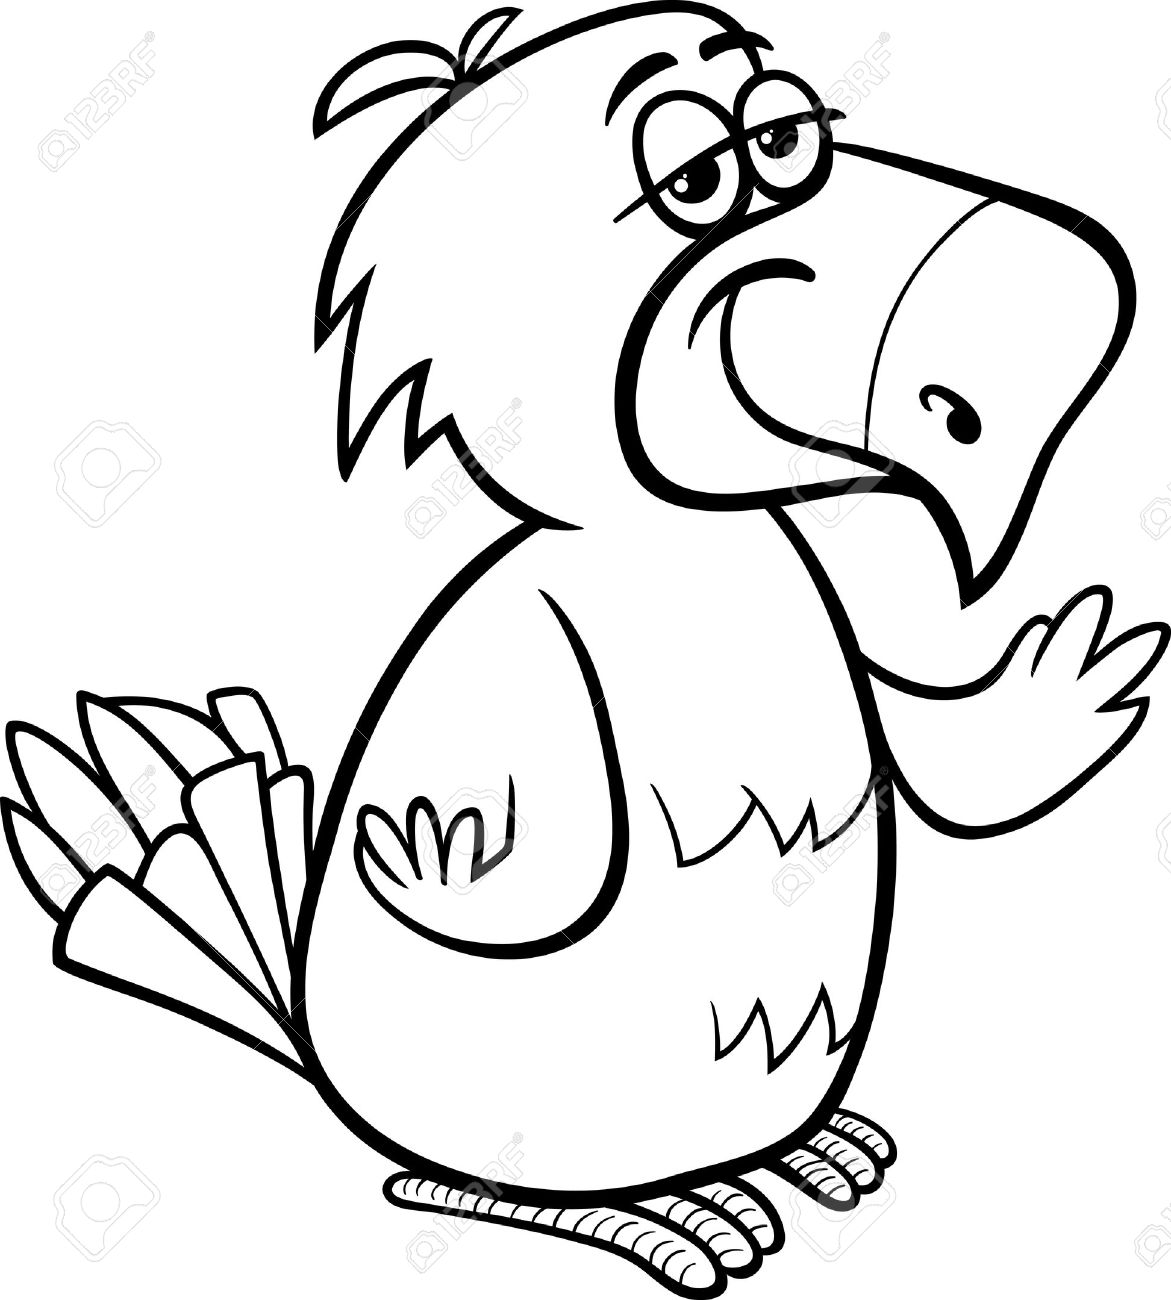 1171x1300 Black And White Cartoon Illustration Of Funny Parrot Bird